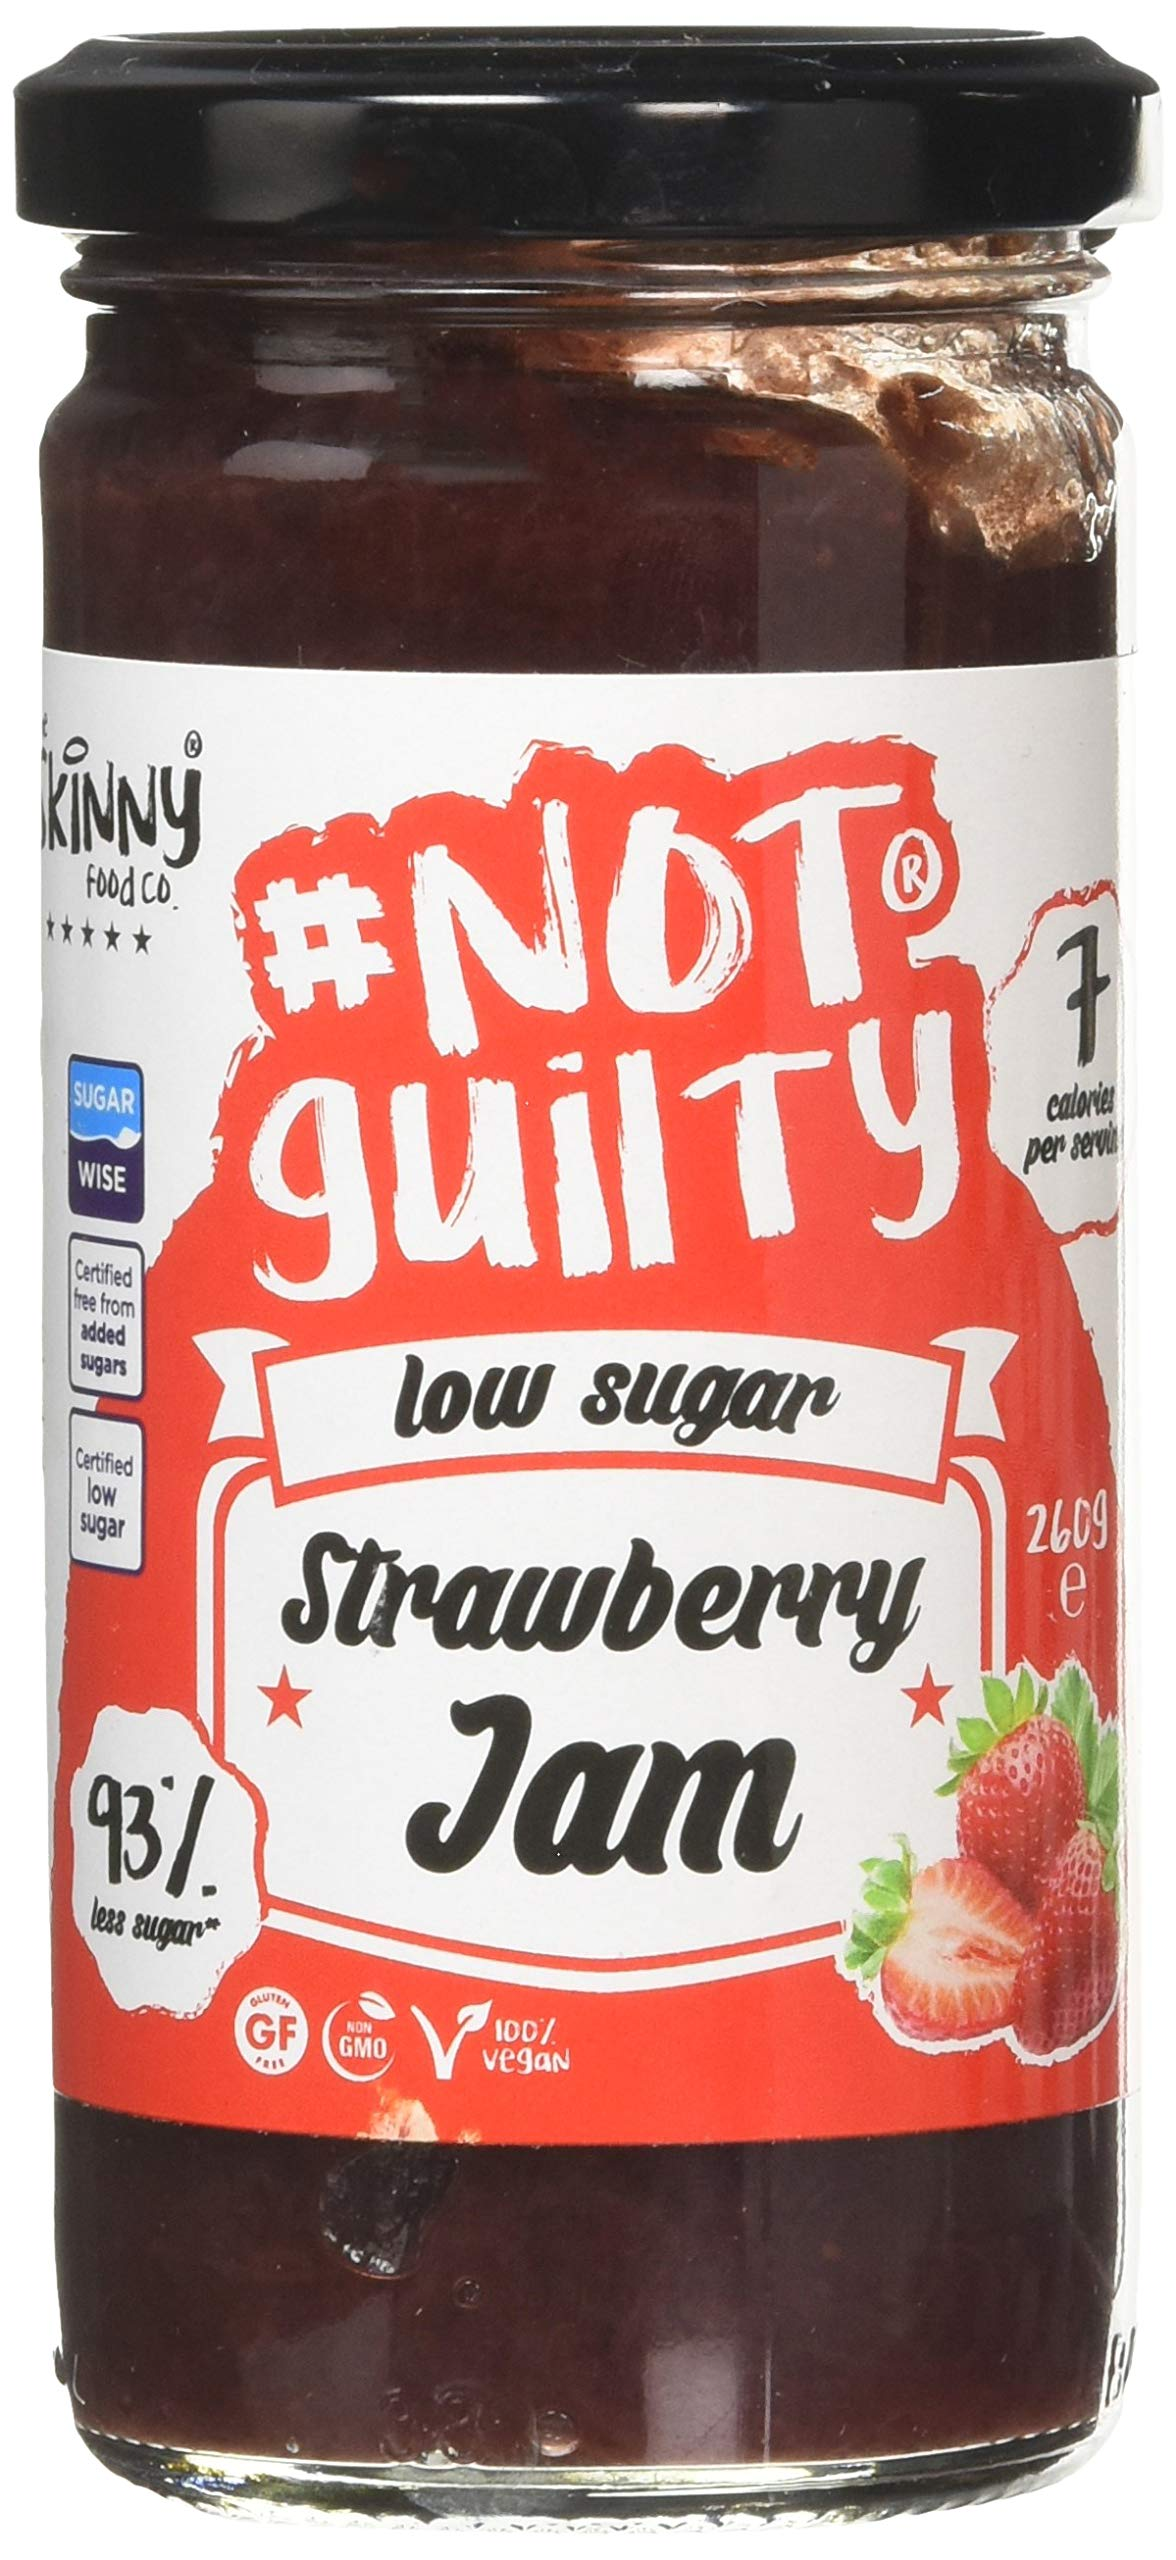 The Skinny Food Co Strawberry Jam | Smooth - Low Calorie - Low Sugar - Made with Real Fruit - No Preservatives - for Gym-Fitness Fans, Weight Loss Diet and Low Carb Diet | 260gr | Not Guilty